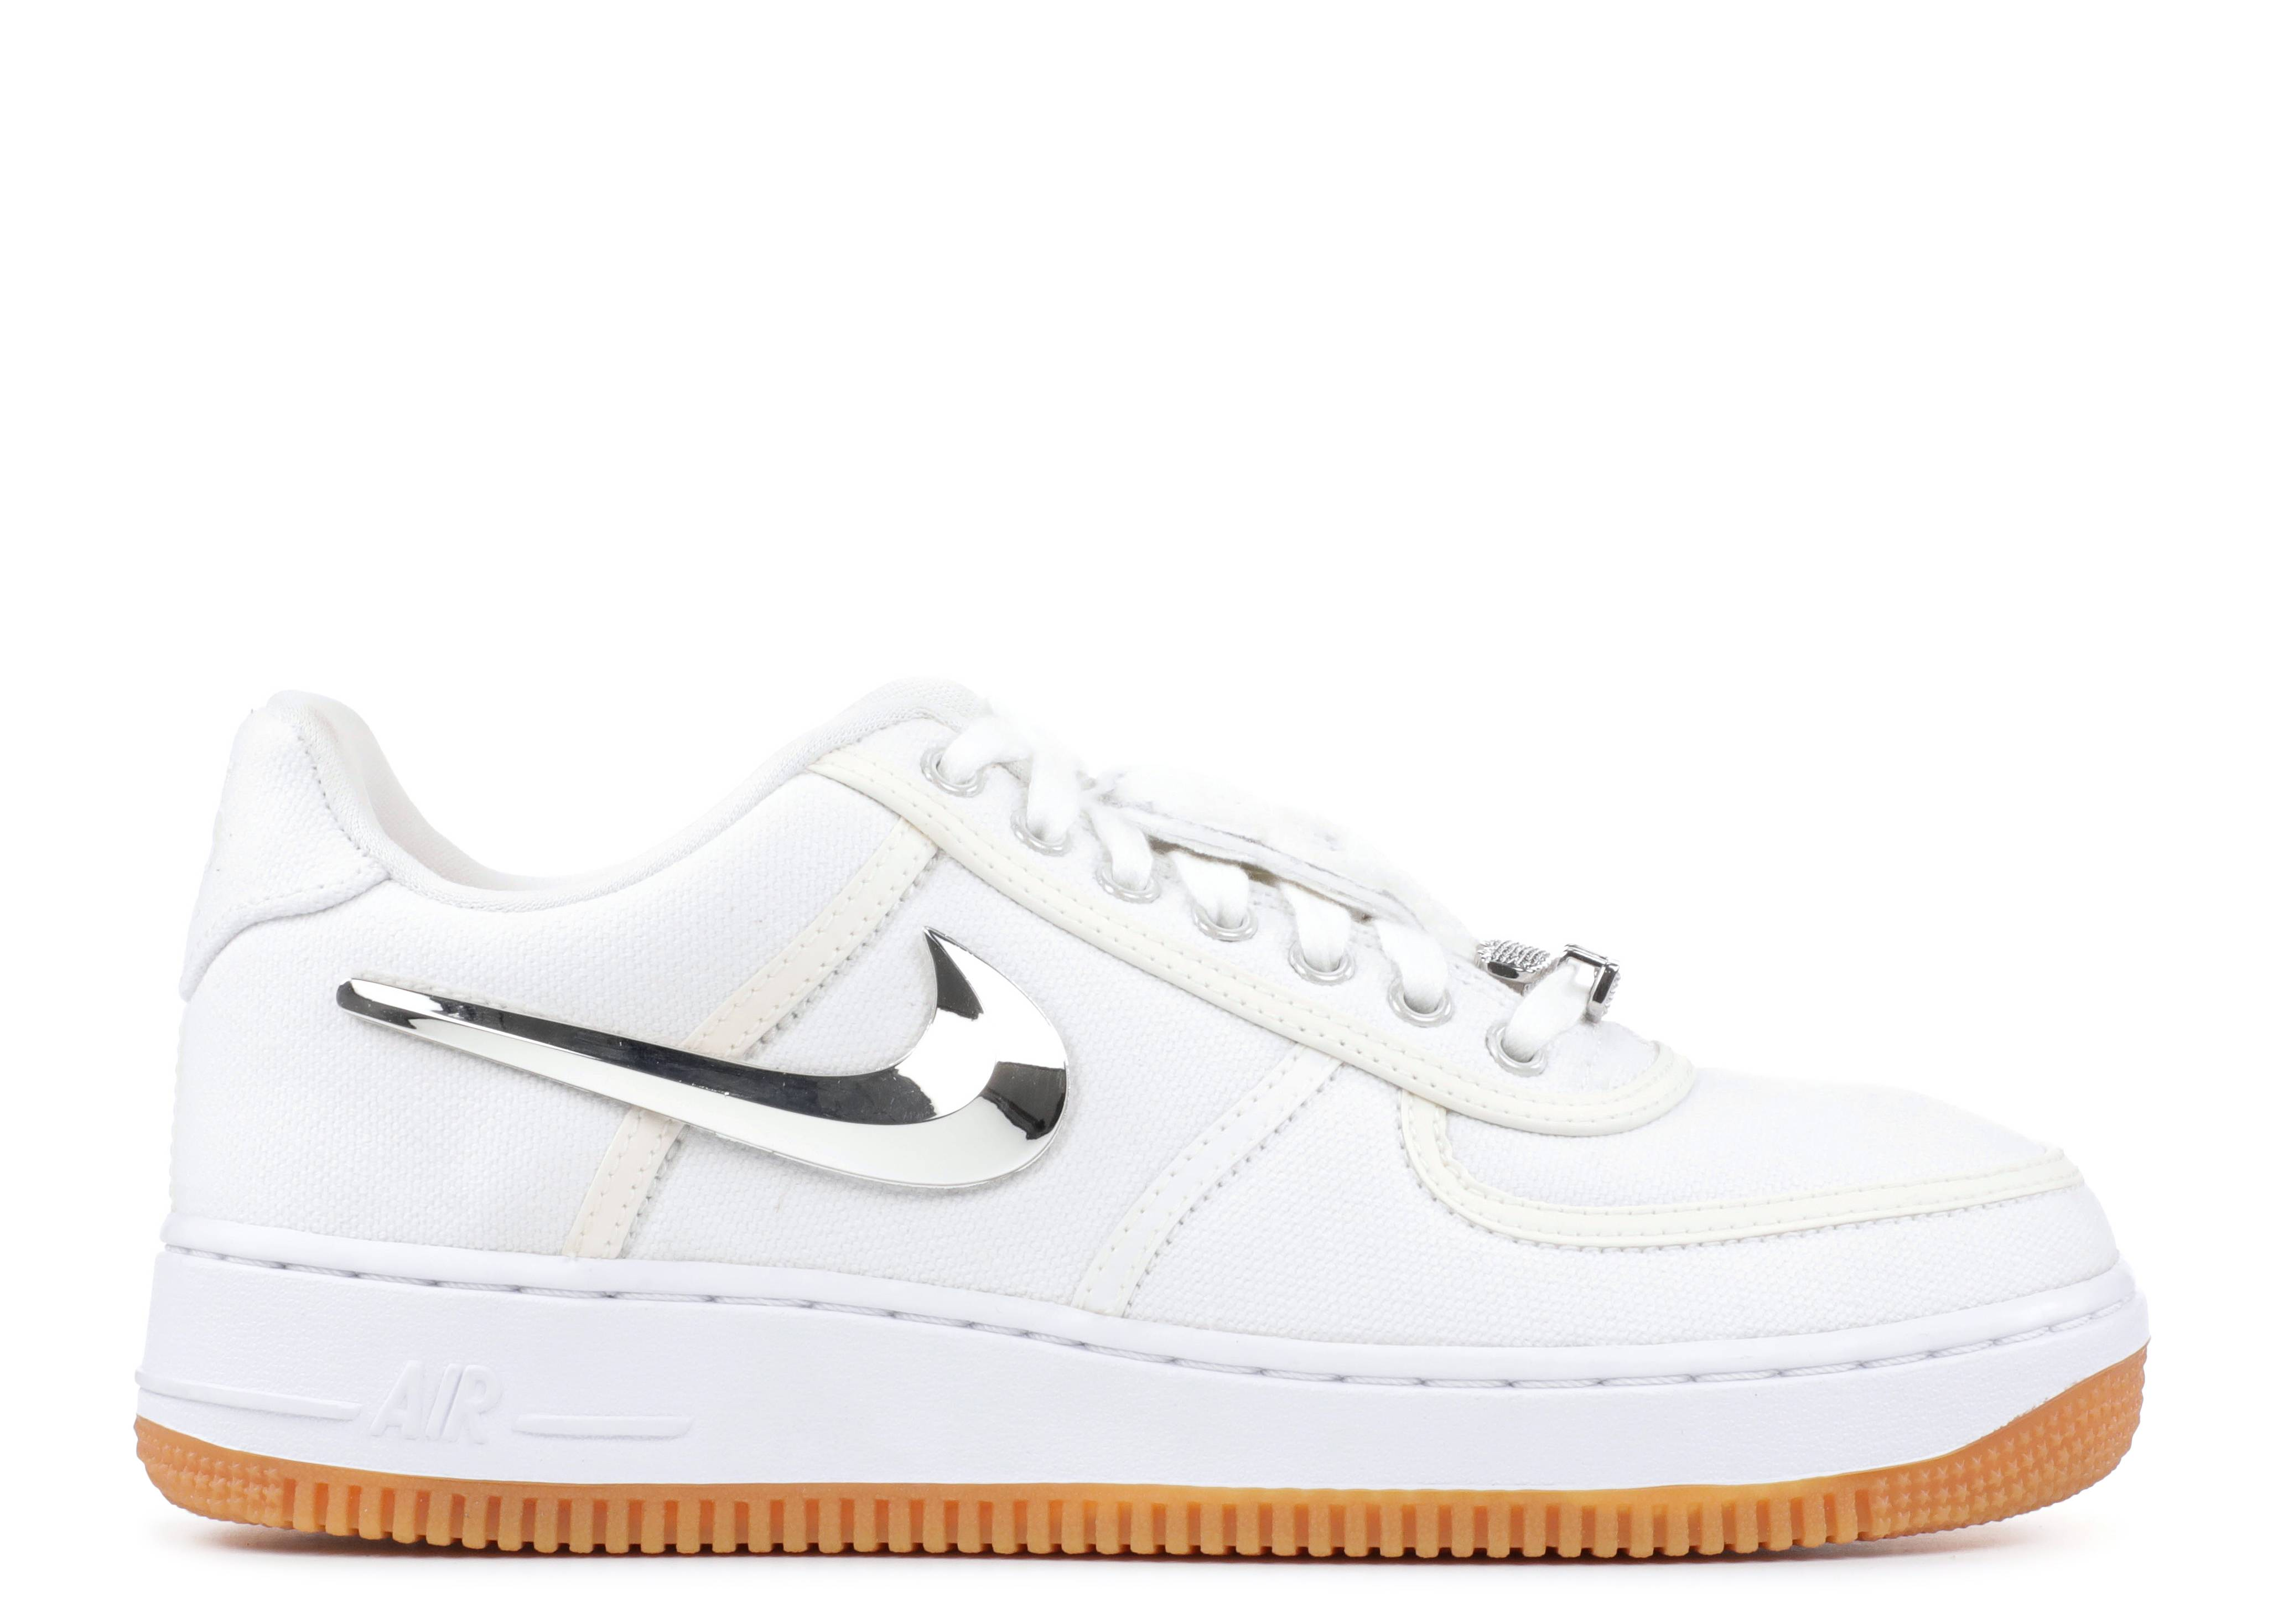 bd1baf107c3e His Nike Air Force 1 was a highlight of last year. The design had a  maturity to it that most wouldn t have expected—who knew so many people  would clamor for ...